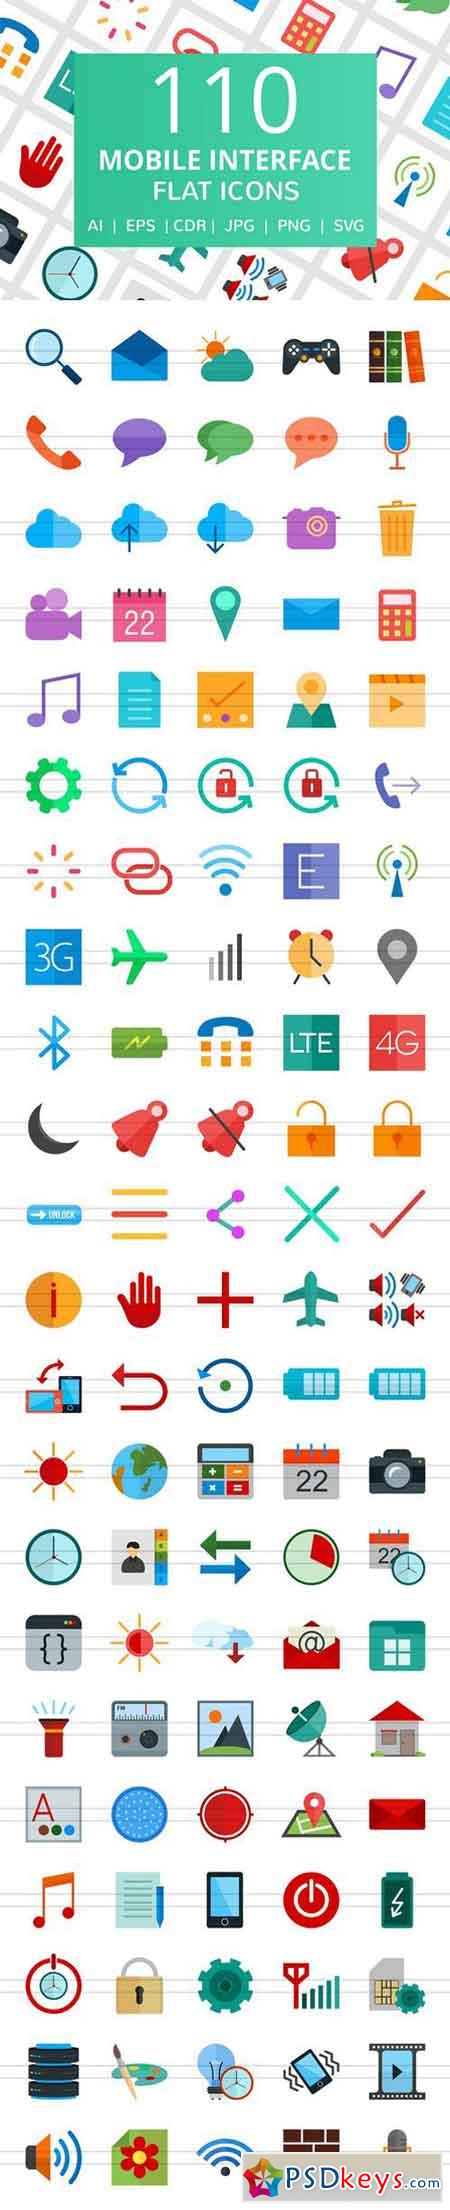 111 Mobile Interface Flat Icons 2185404